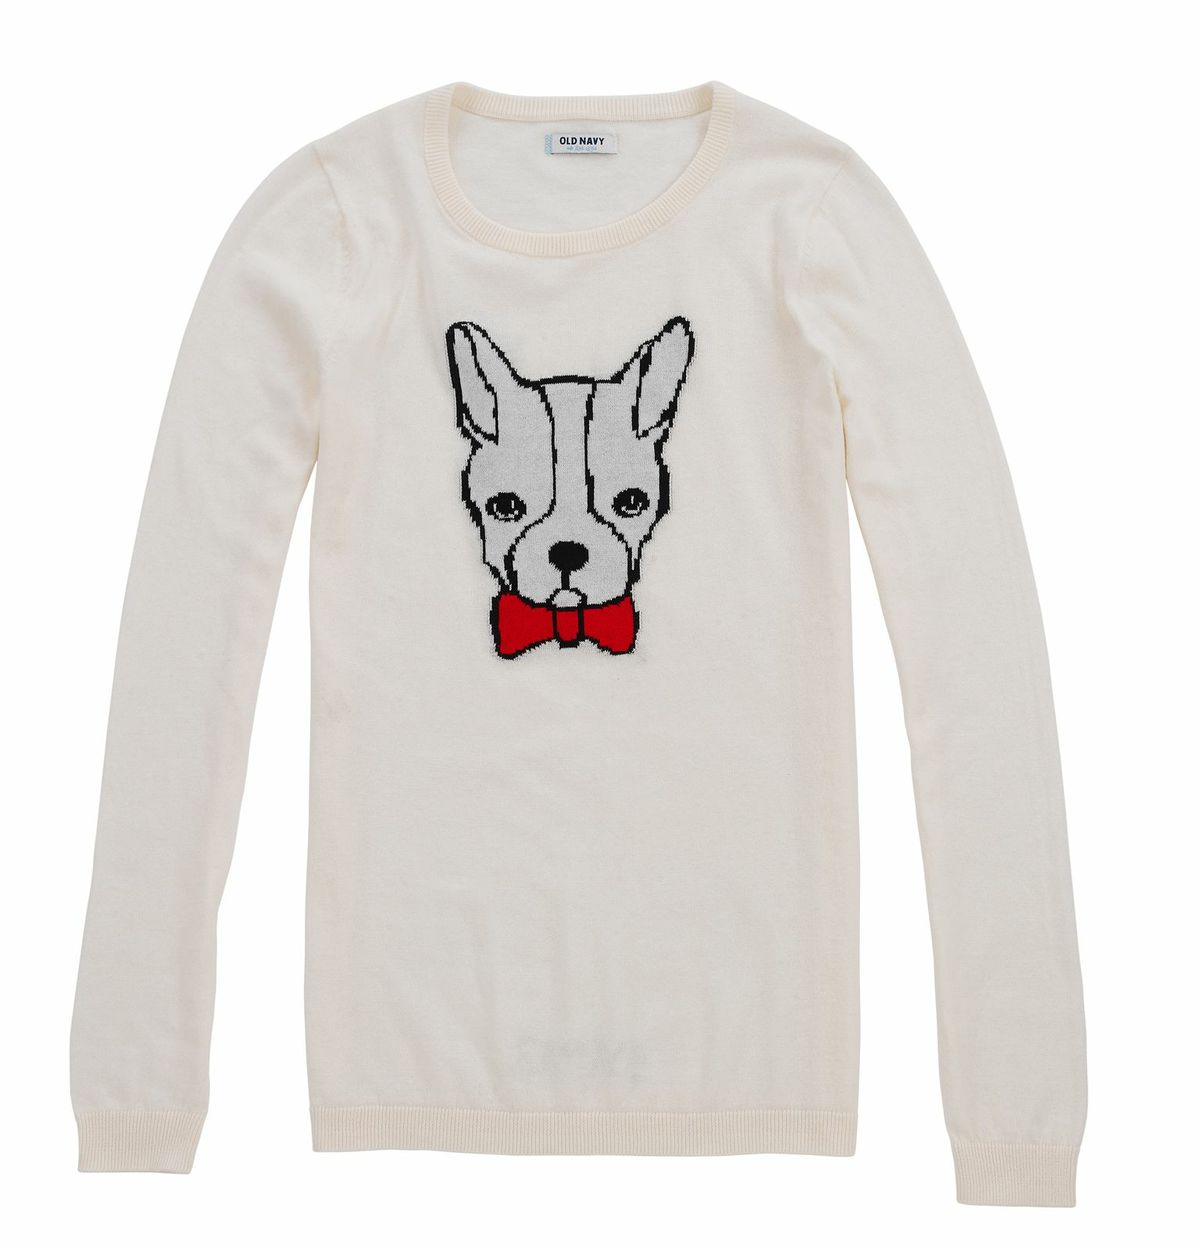 We're already imagining how sweet Old Navy's bulldog sweater ($27) will look with our skinny jeans and loafers.